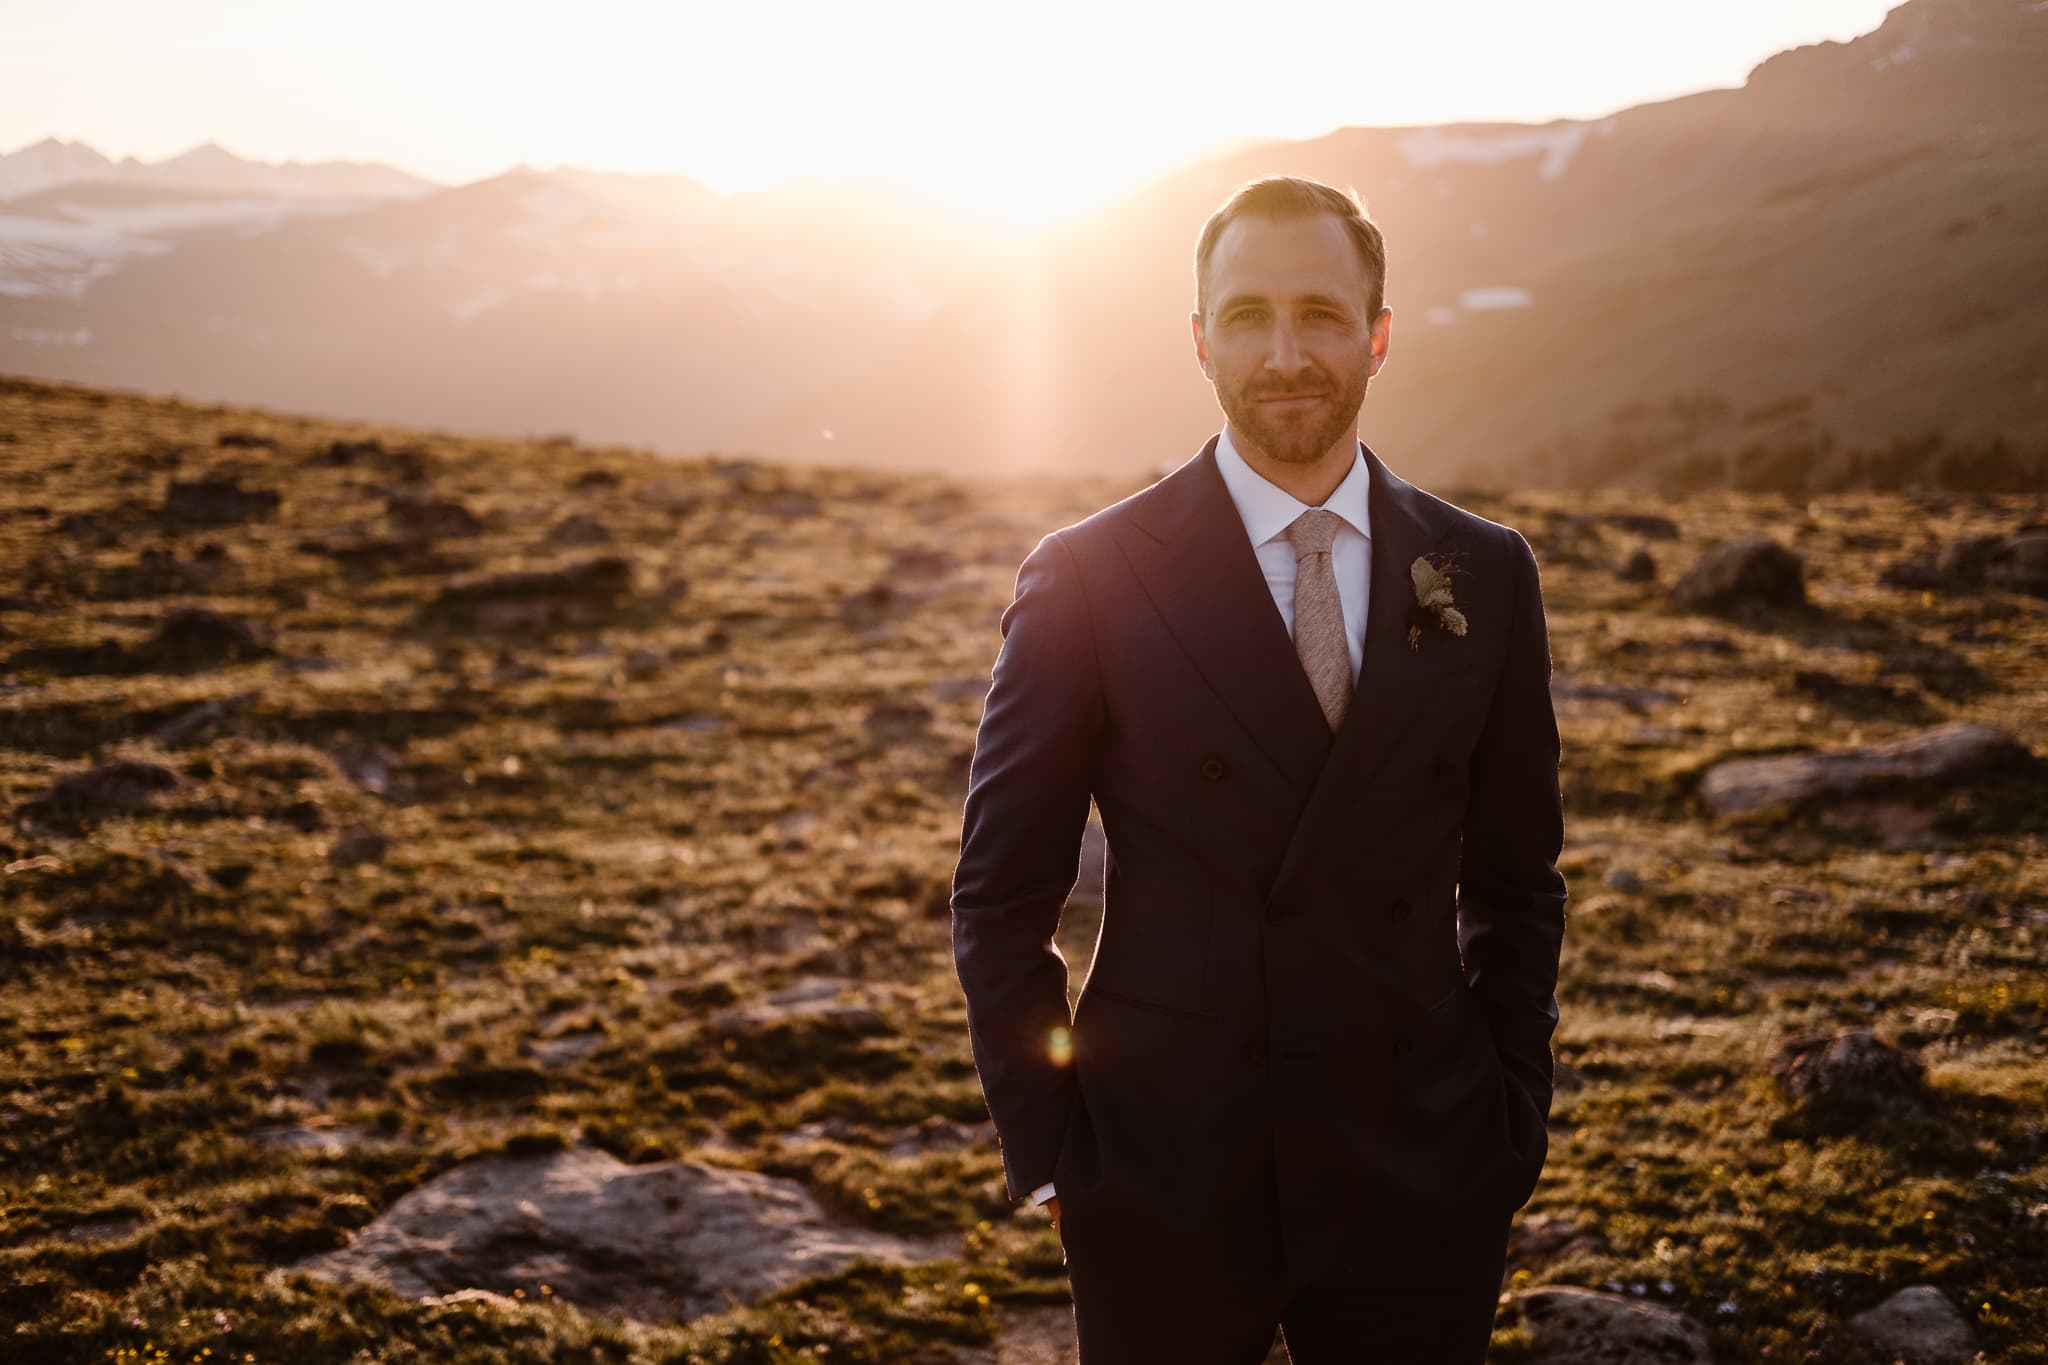 Trail Ridge Road Elopement Photographer, Colorado adventure wedding photography, mountain hiking elopement, groom at sunset